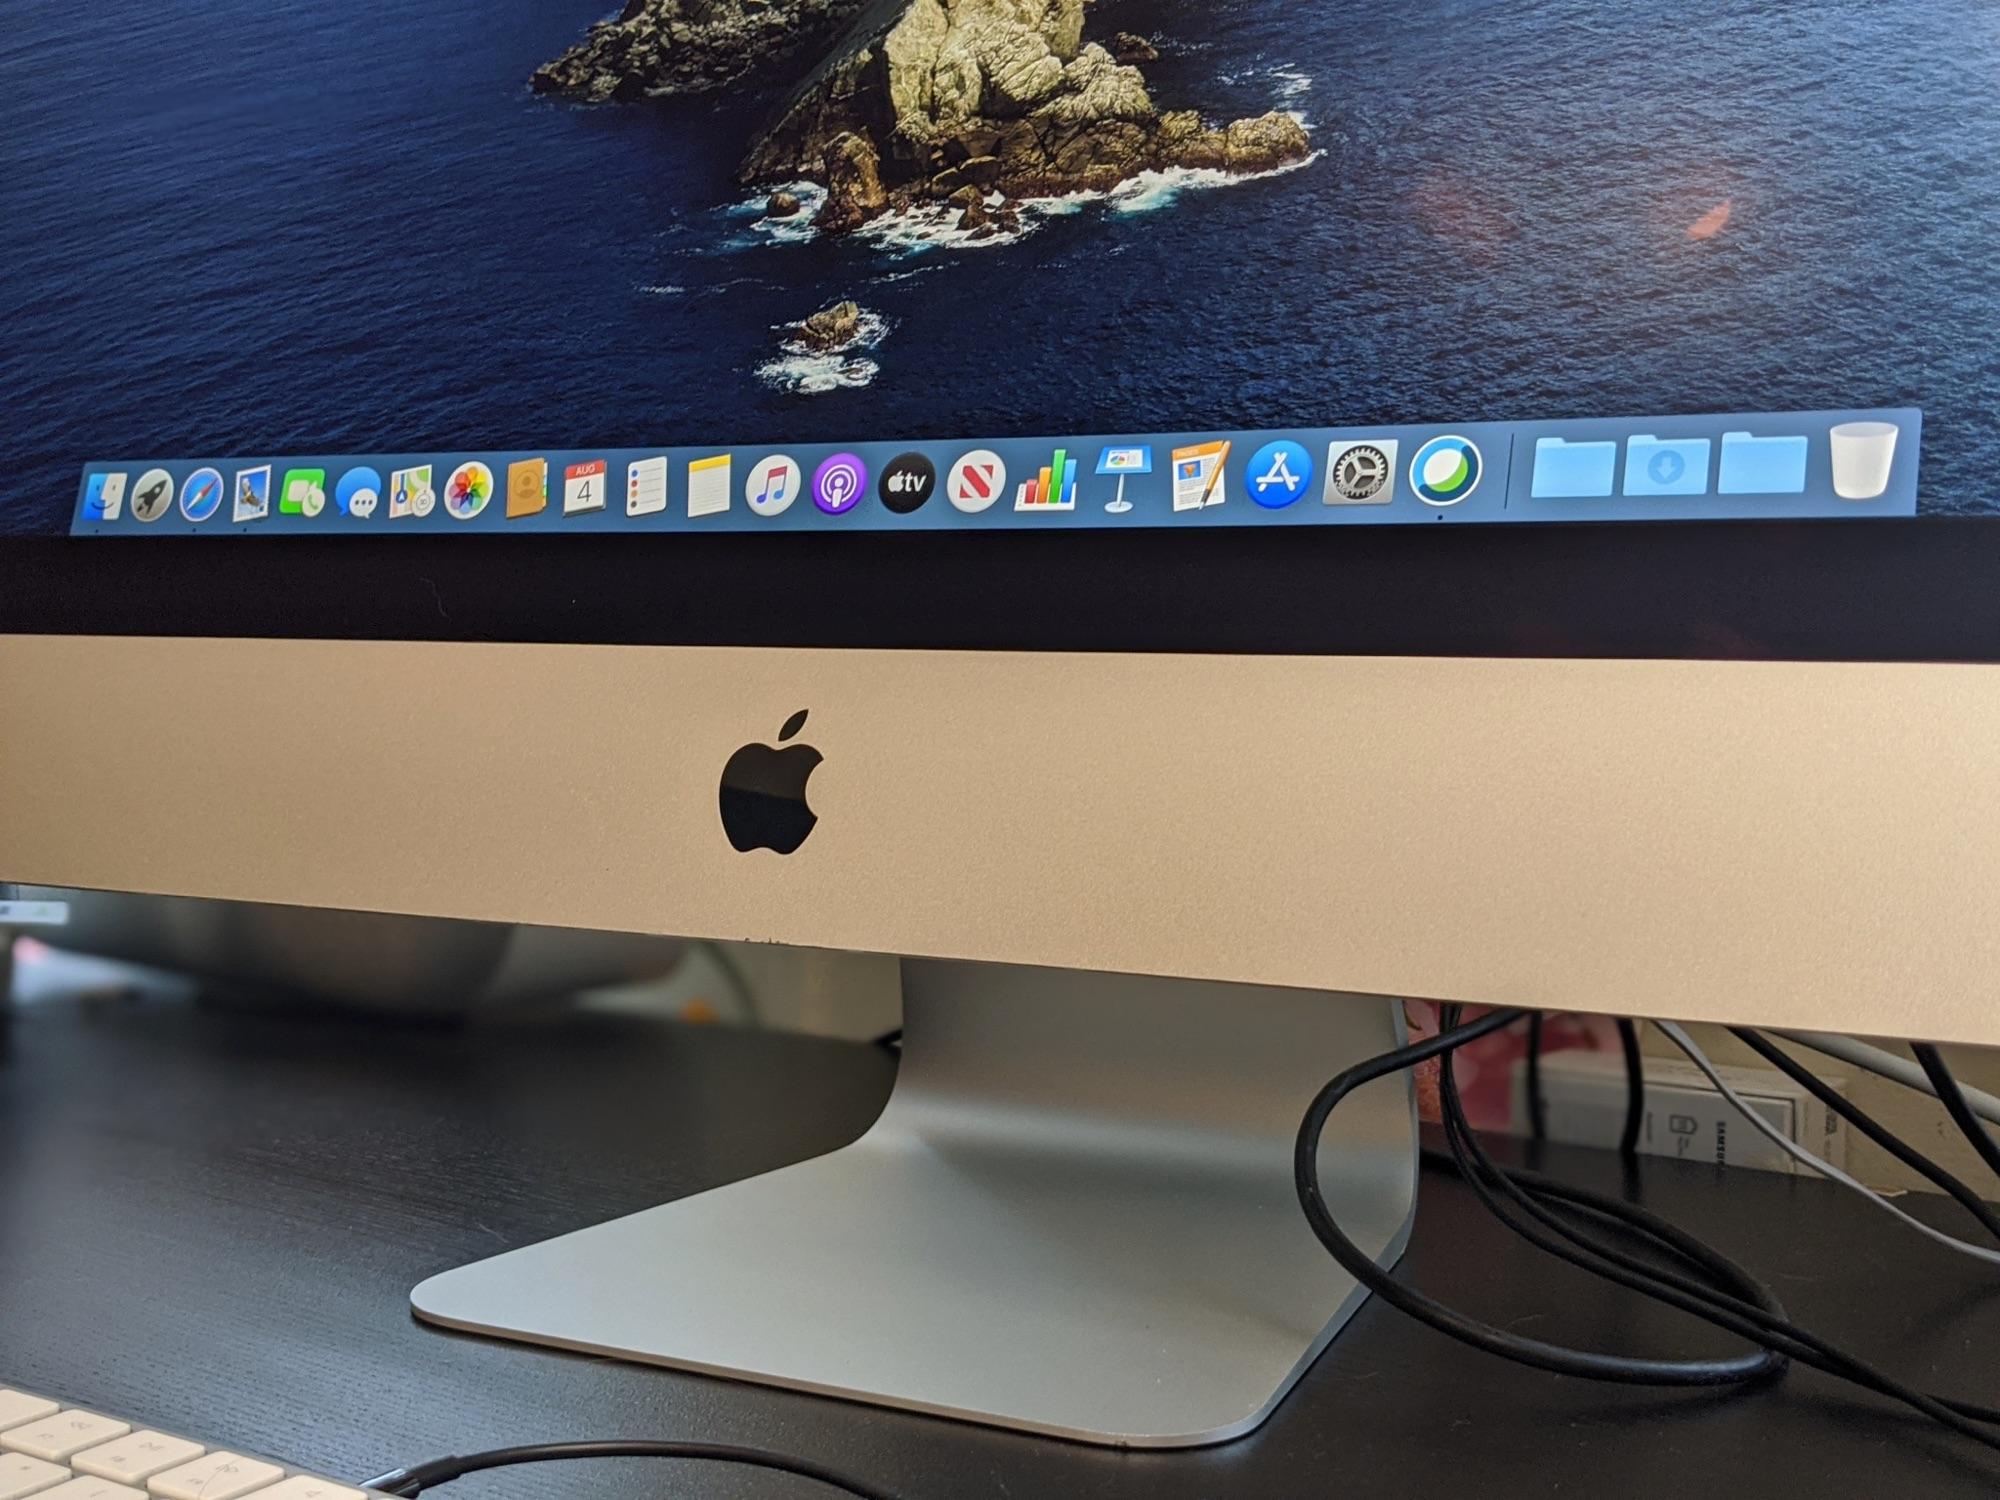 2020 27-Inch iMac Reviews: A Great Machine for Working From Home With Upgraded Camera, Speakers, Microphone and More